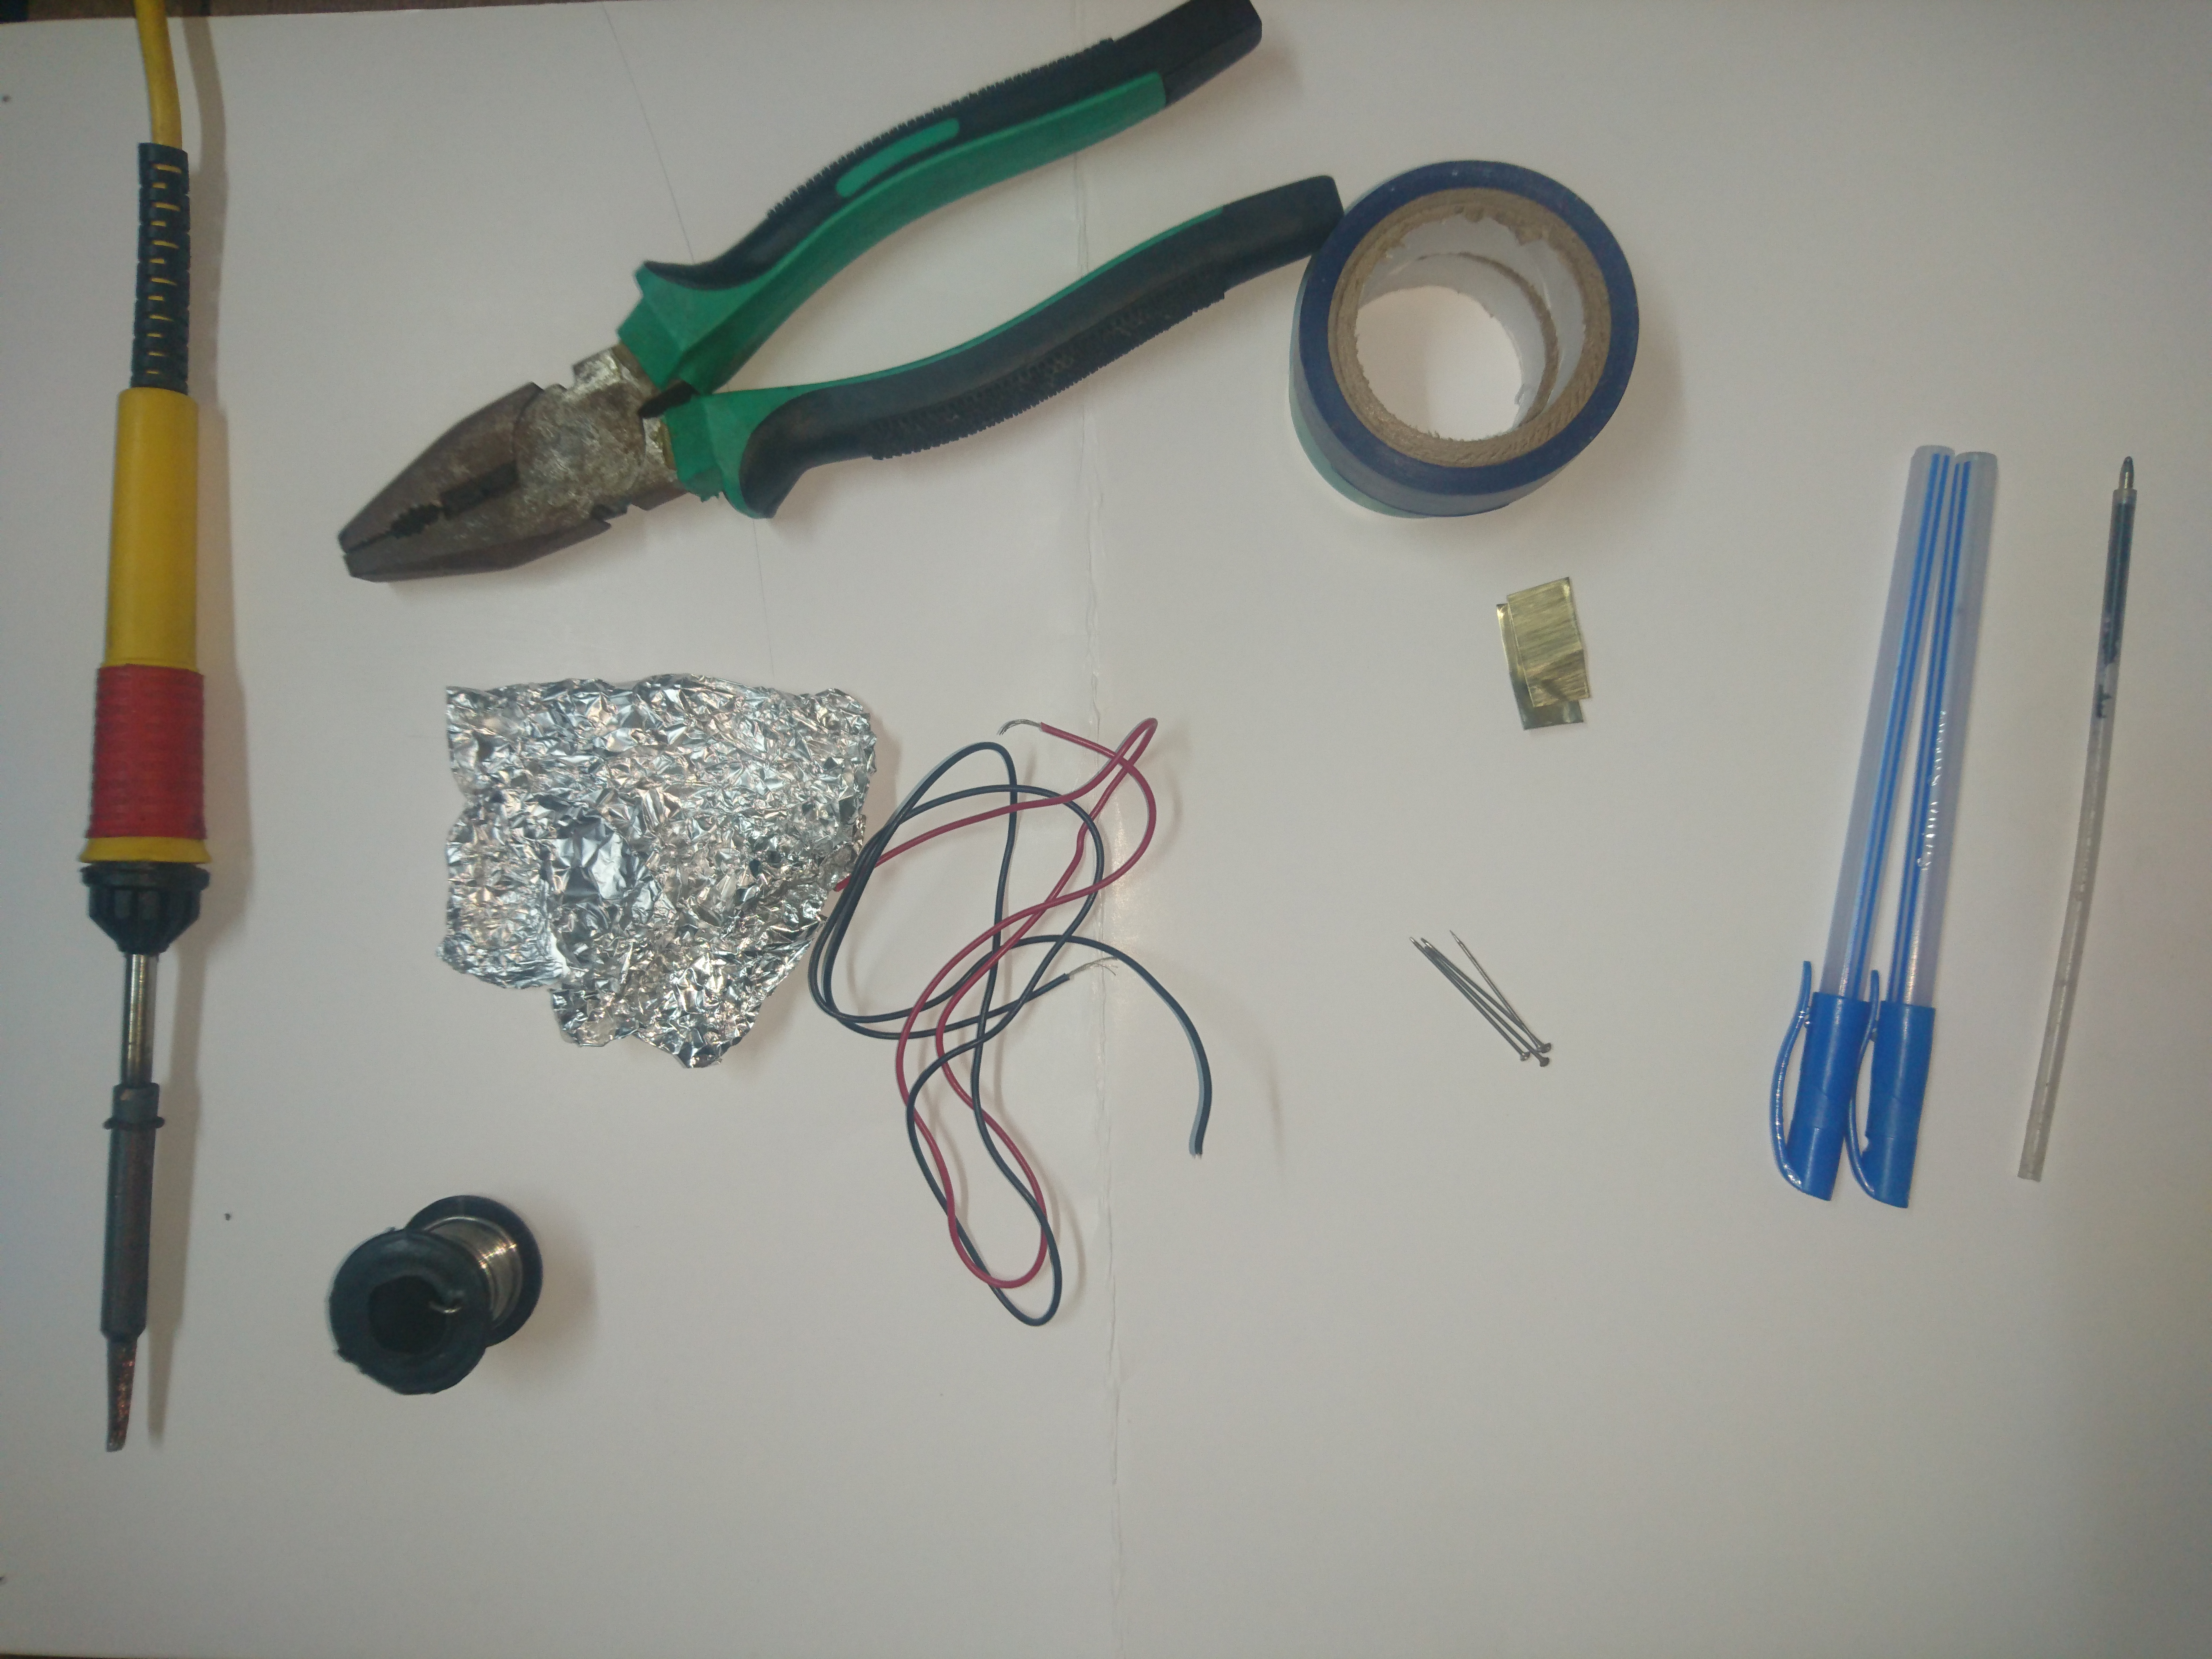 Picture of Materials Used: